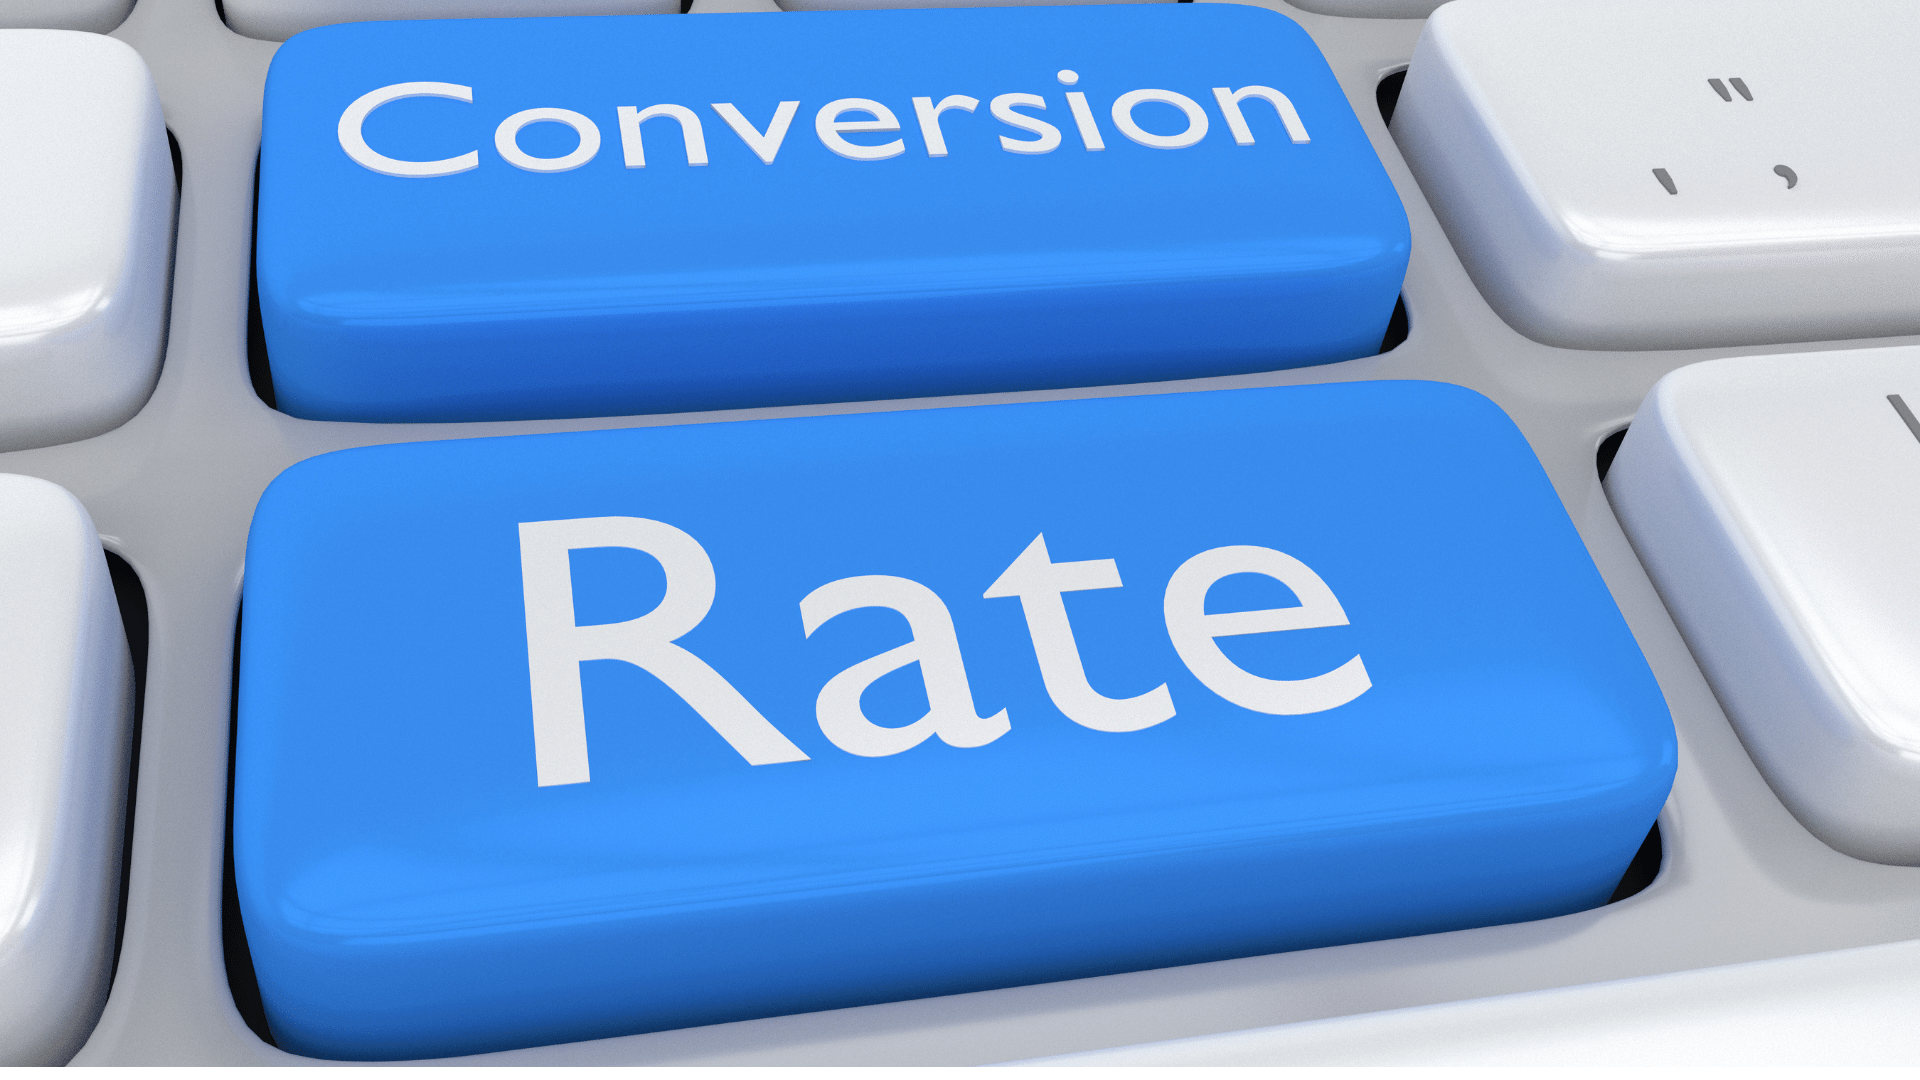 conversion rate keyboard button graphic